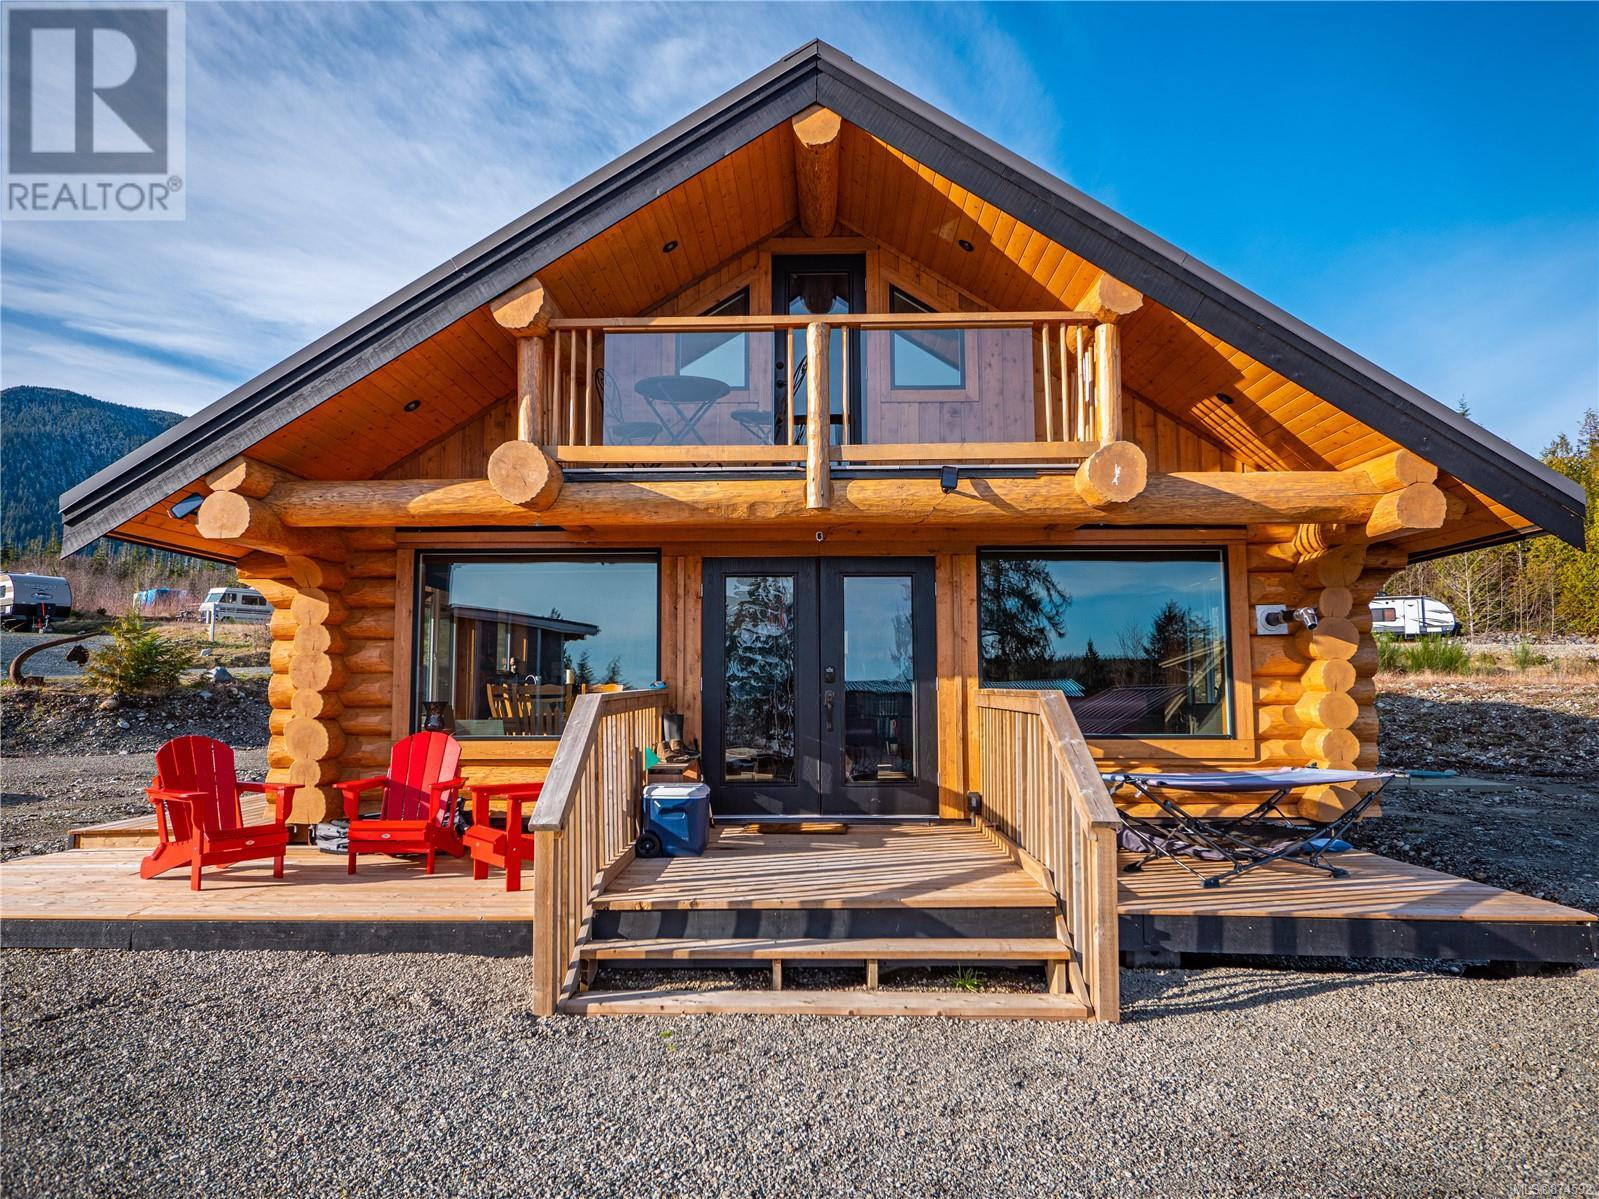 MLS® #874592 - Ucluelet House For sale Image #2